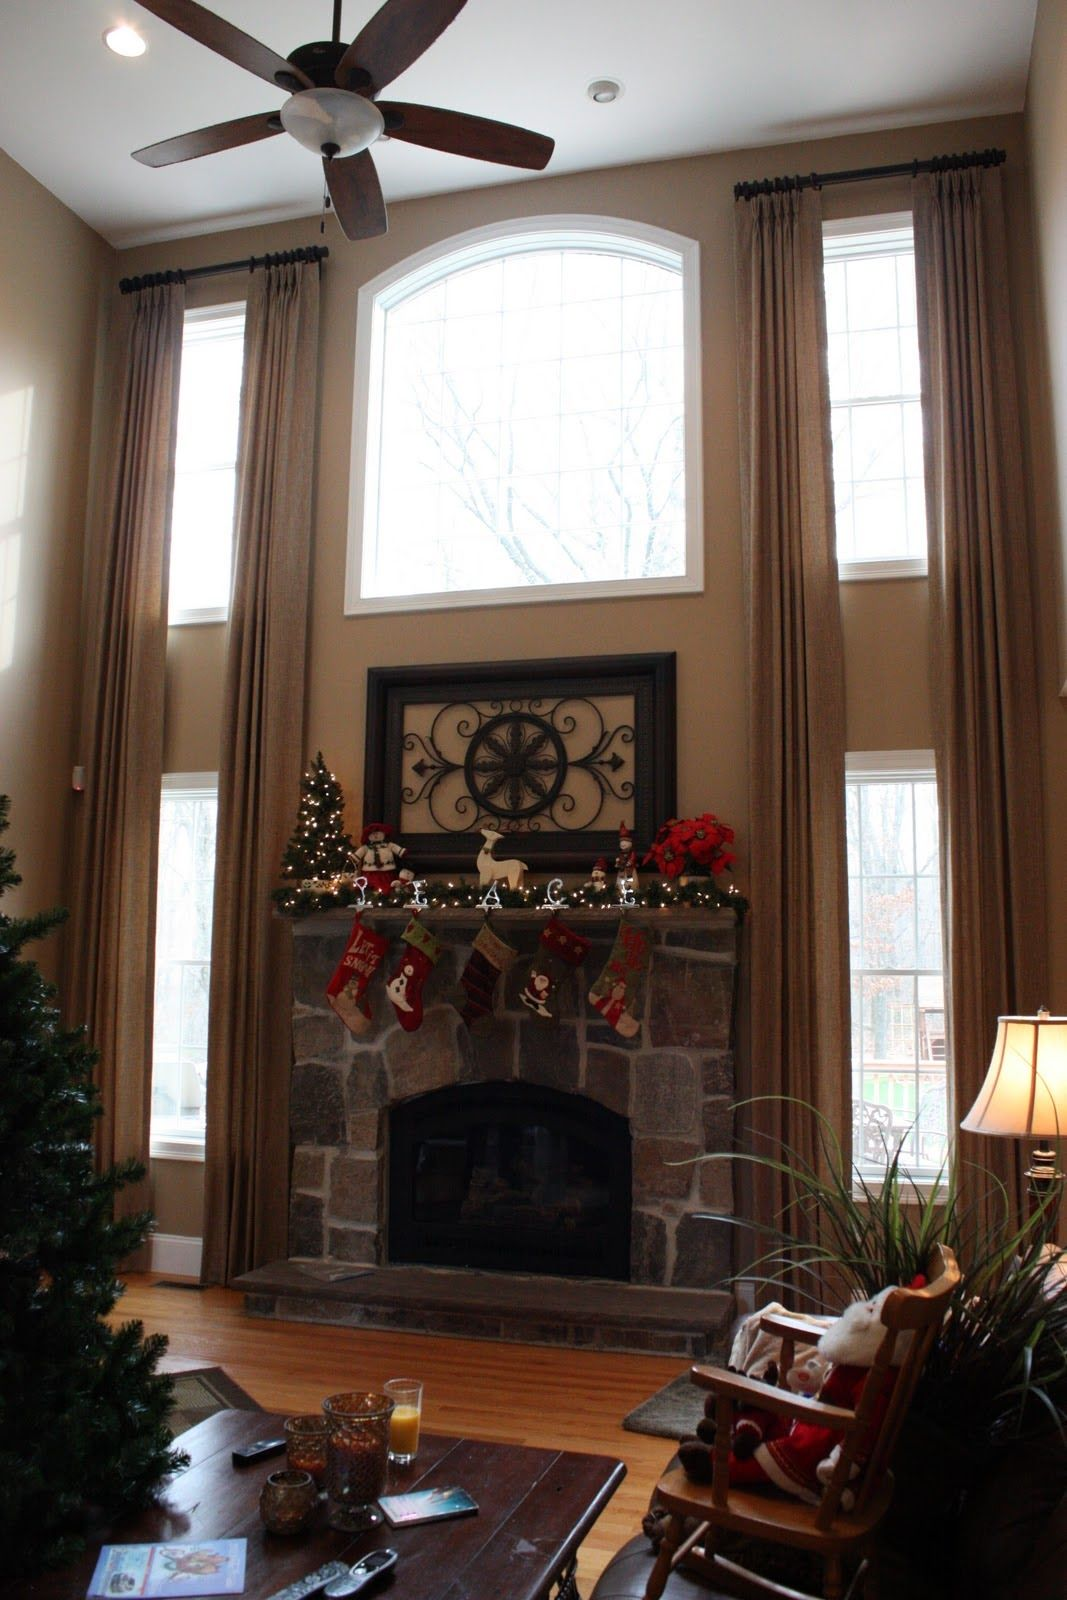 Two story wall decorating ideas | House Ideas | Pinterest ...